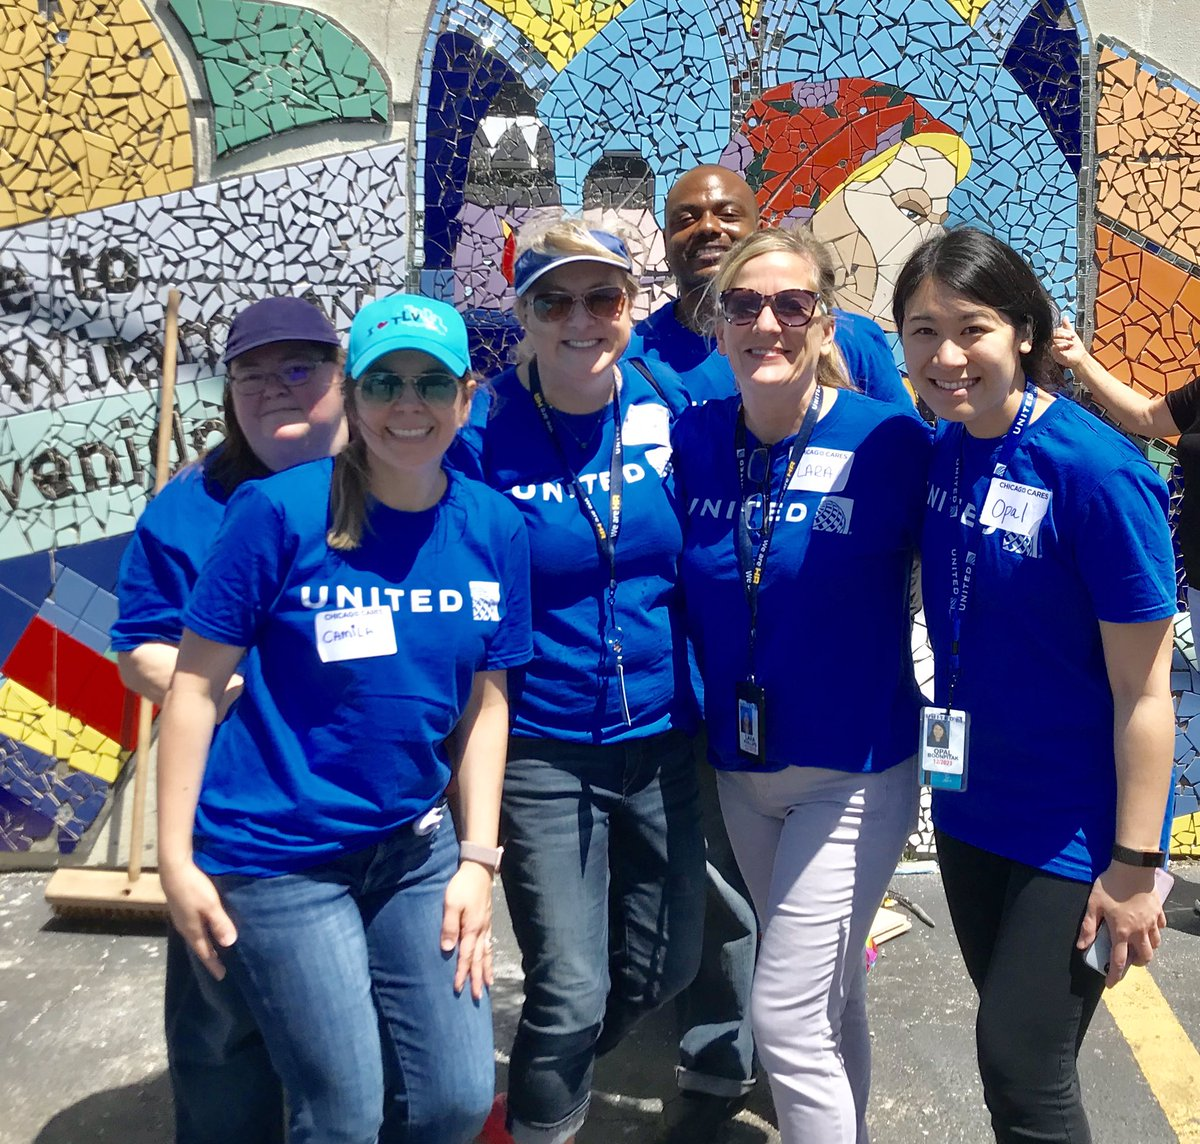 Woot woot! Every Action Counts! What a great day helping in Belmont Cragin @weareunited #beingunited